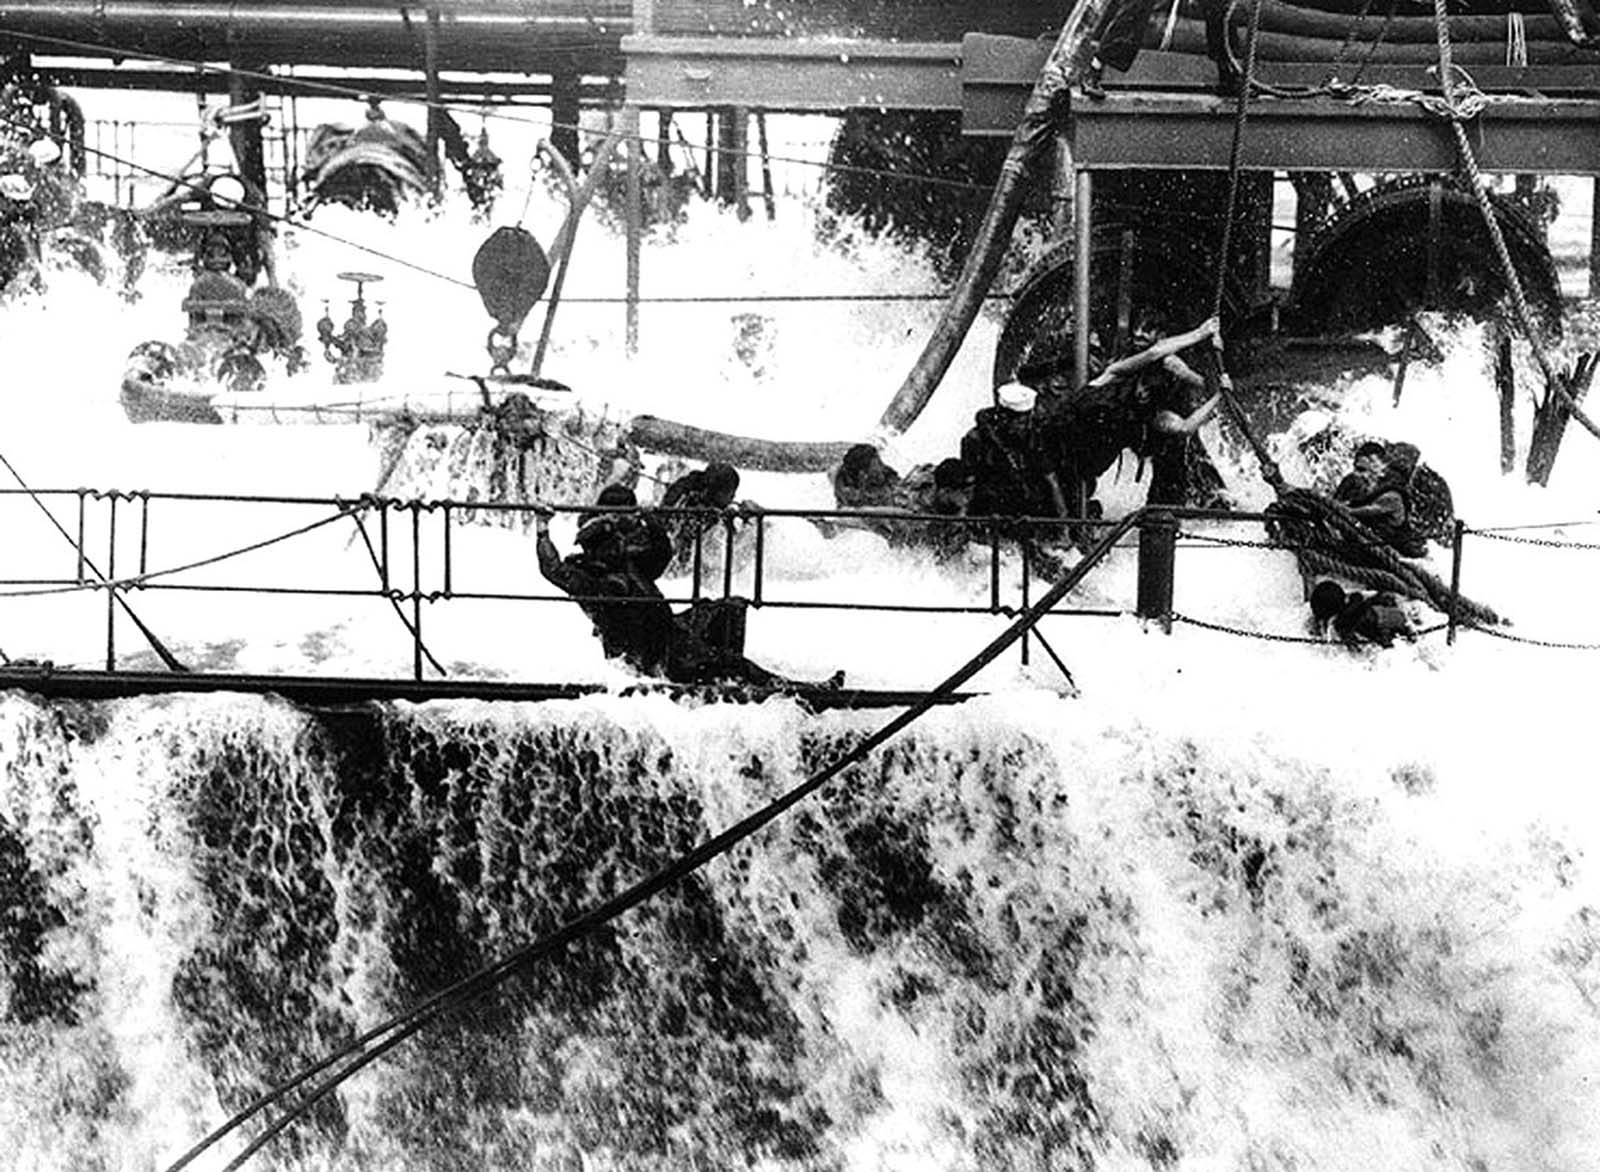 A wave breaks over the main deck of the fleet oiler USS Neosho, engulfing the hose crew, as she refuels USS Yorktown in early May 1942, shortly before the Battle of Coral Sea in the South Pacific. The Neosho was lost in that battle.